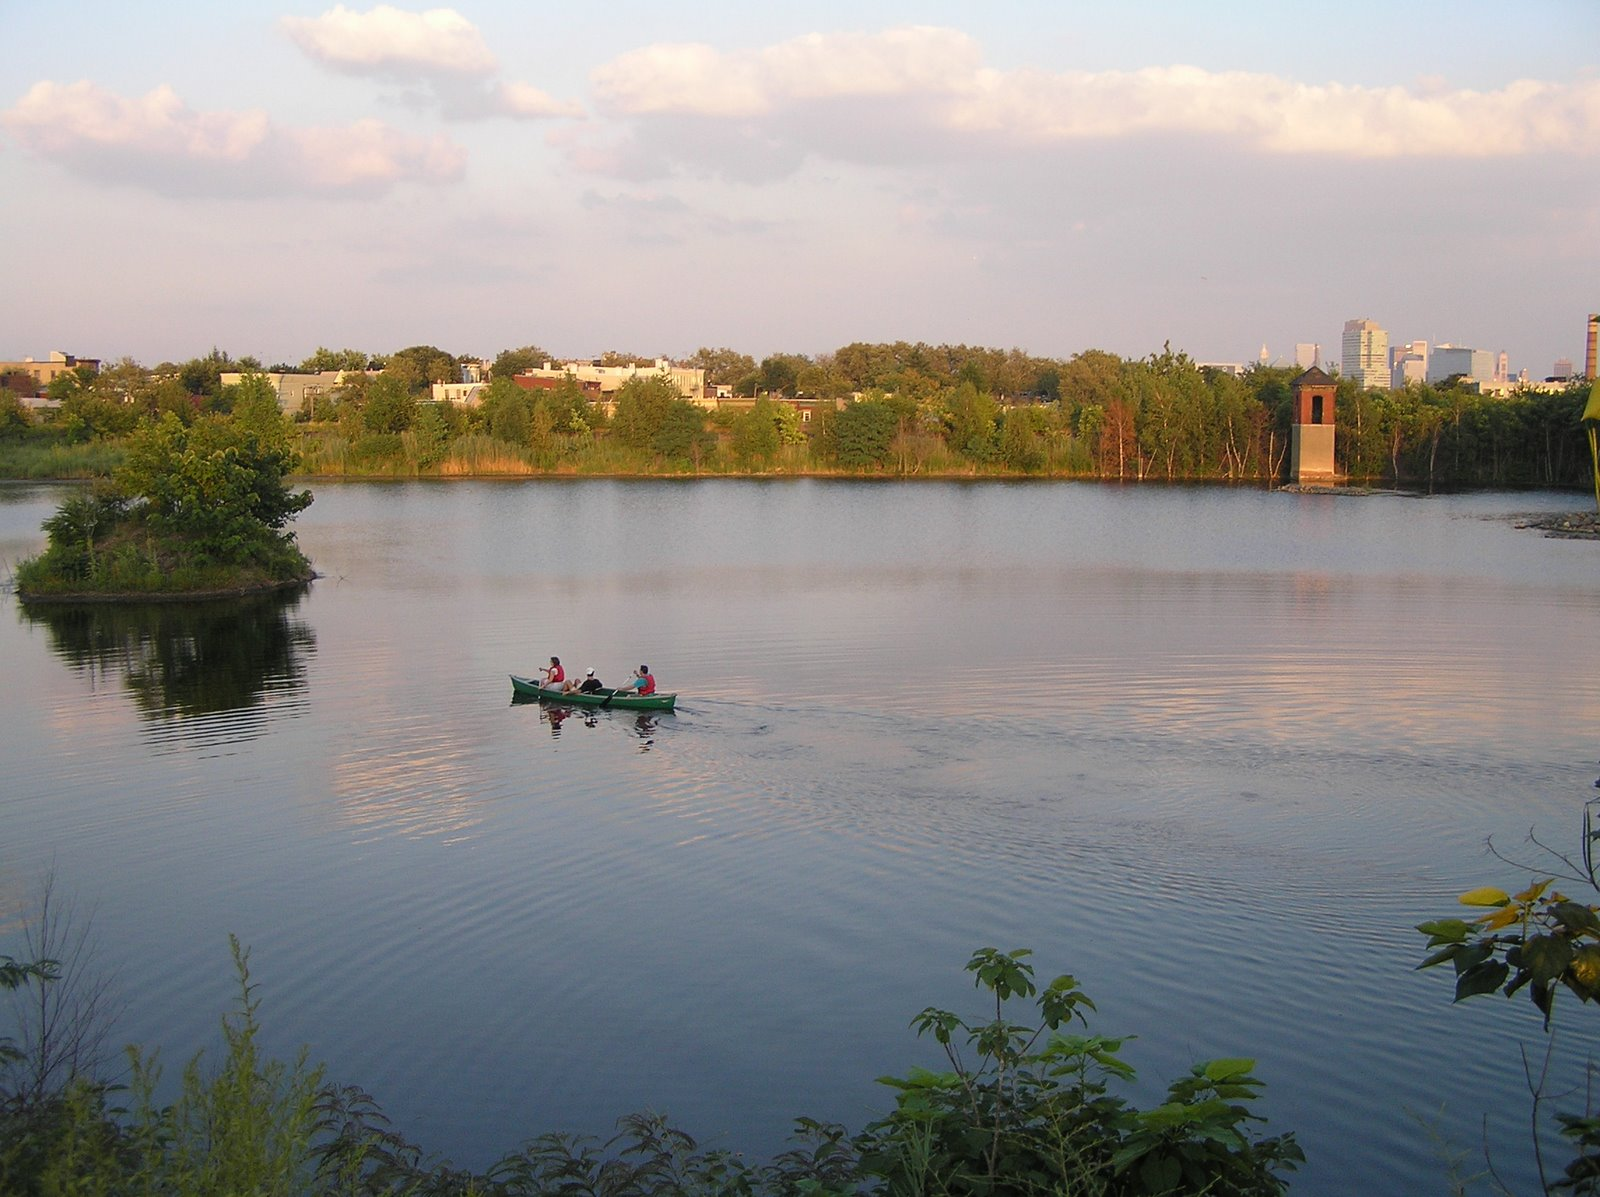 Photo overlooking the Reservoir from the West side, facing East. The water, surrounded by green trees, is mostly still and reflecting the sunset and pink clouds. Three people of mixed races are canoeing towards the small island on the left.